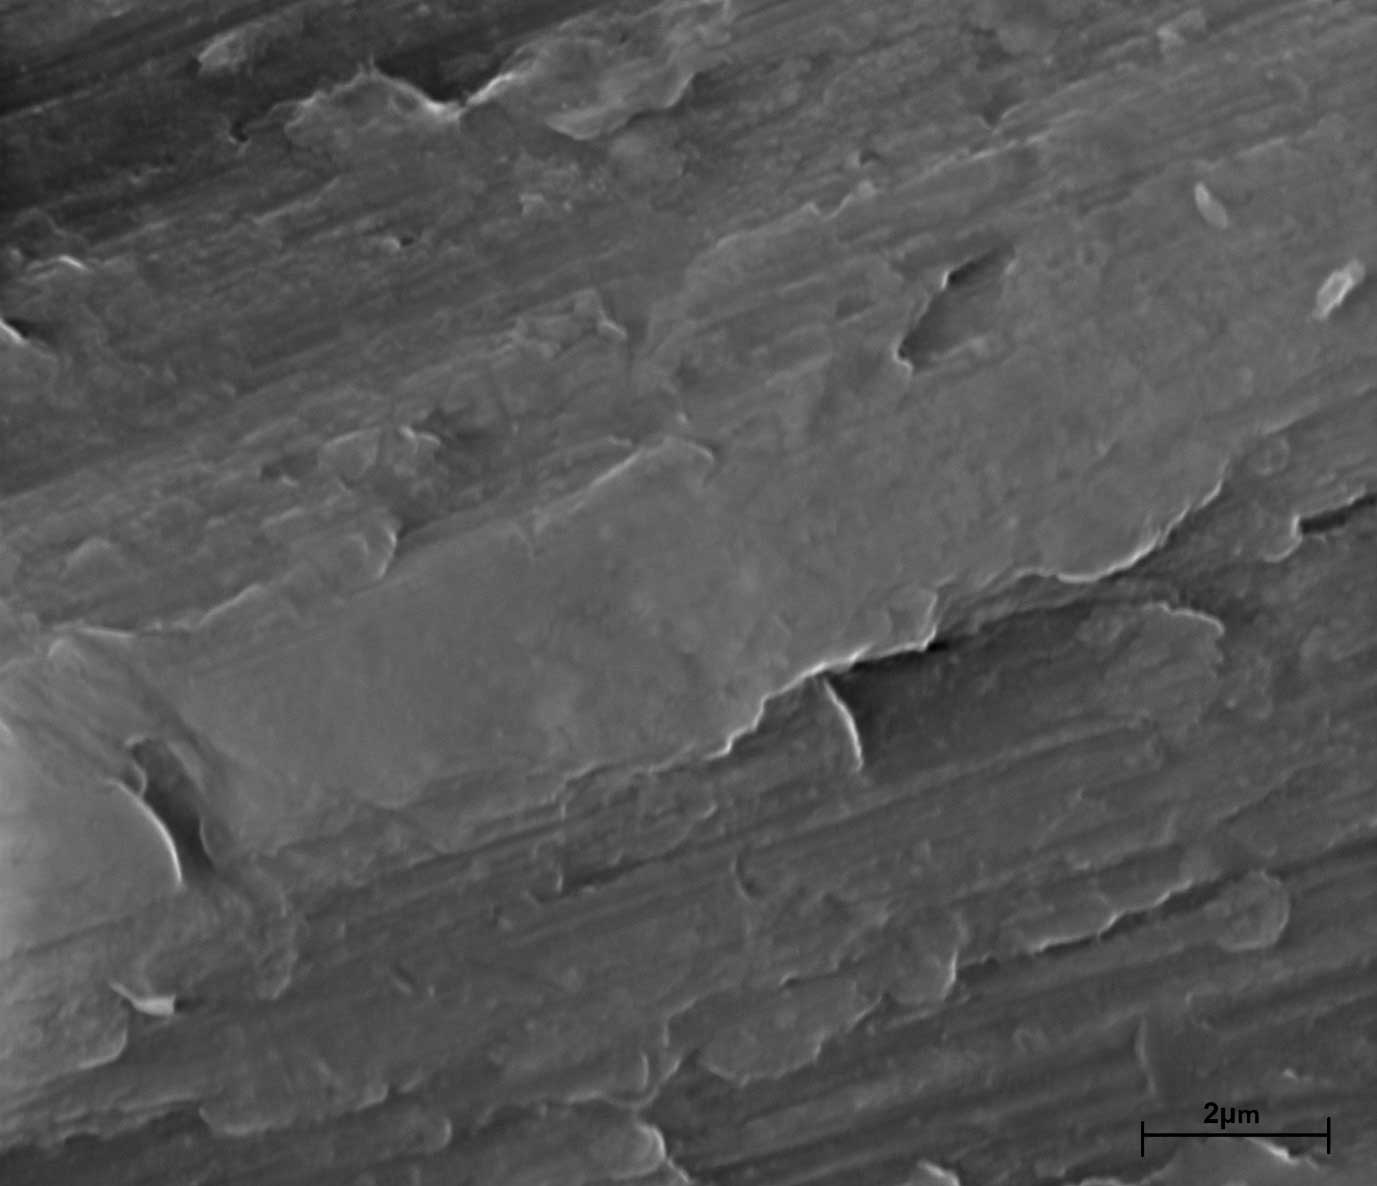 Figure 2: Scanning electron microscope image of as received alloy surface of AA6022.